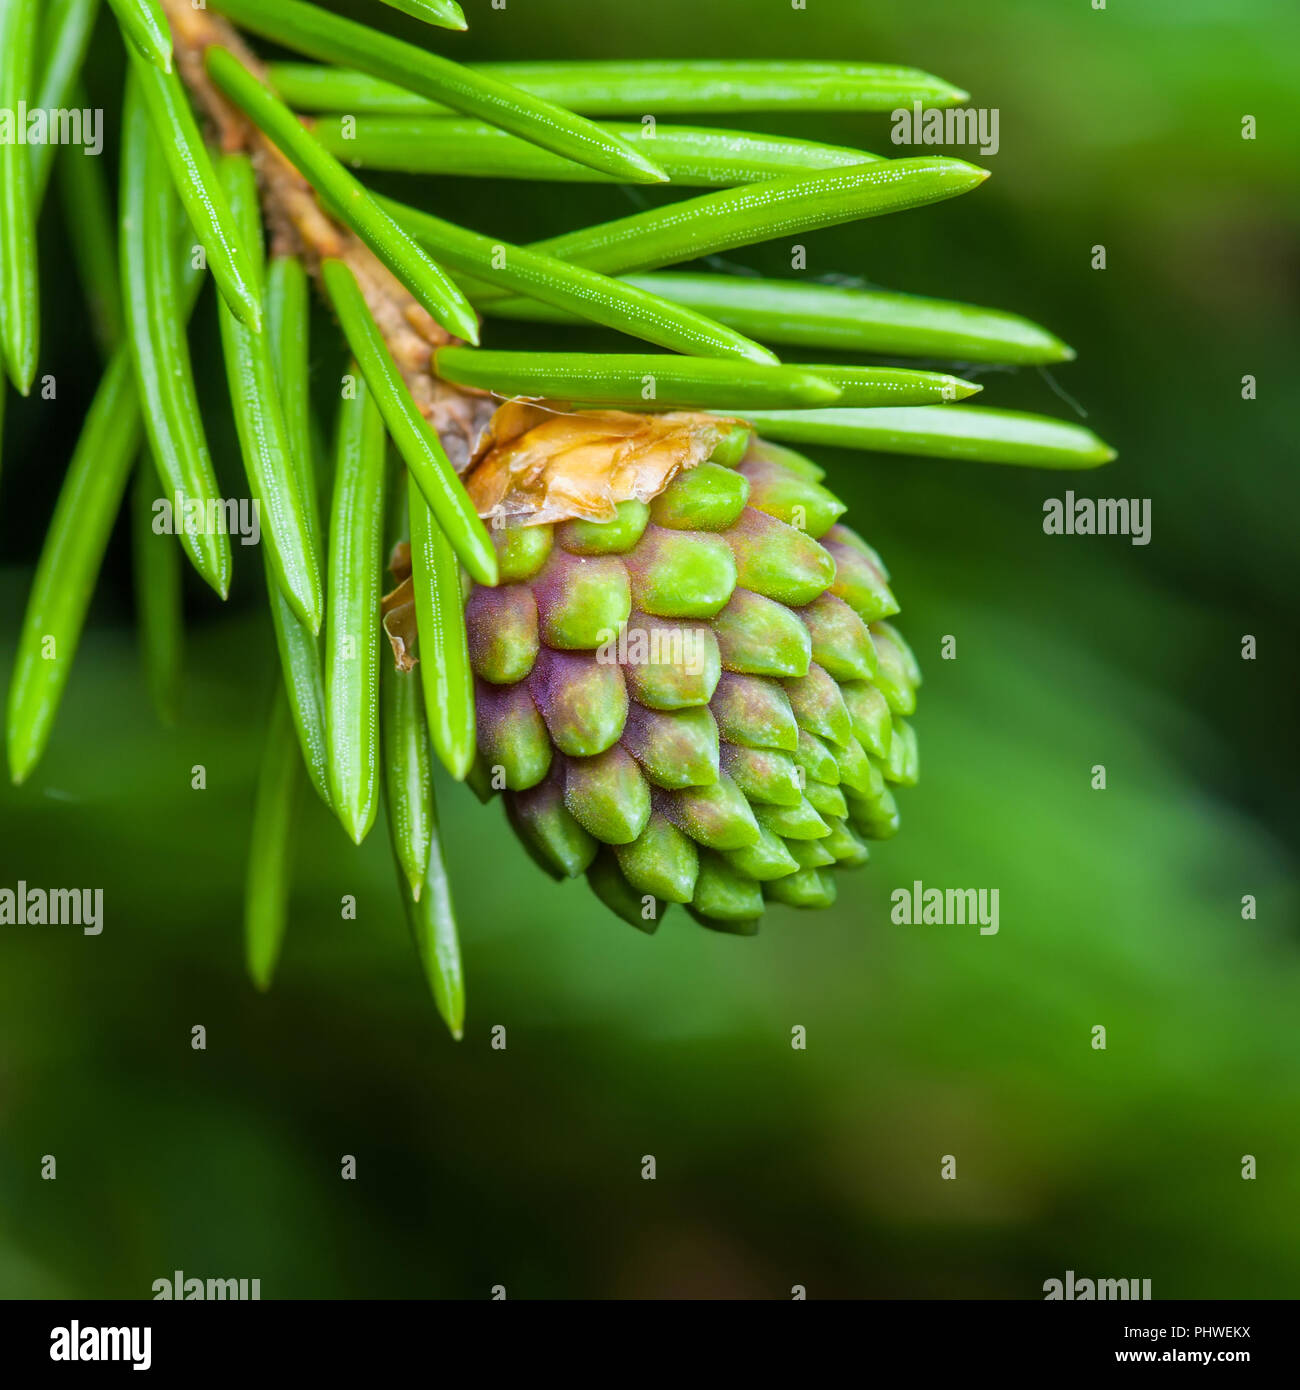 Green Fir Pine Conifer Cone Sprout Macro - Stock Image